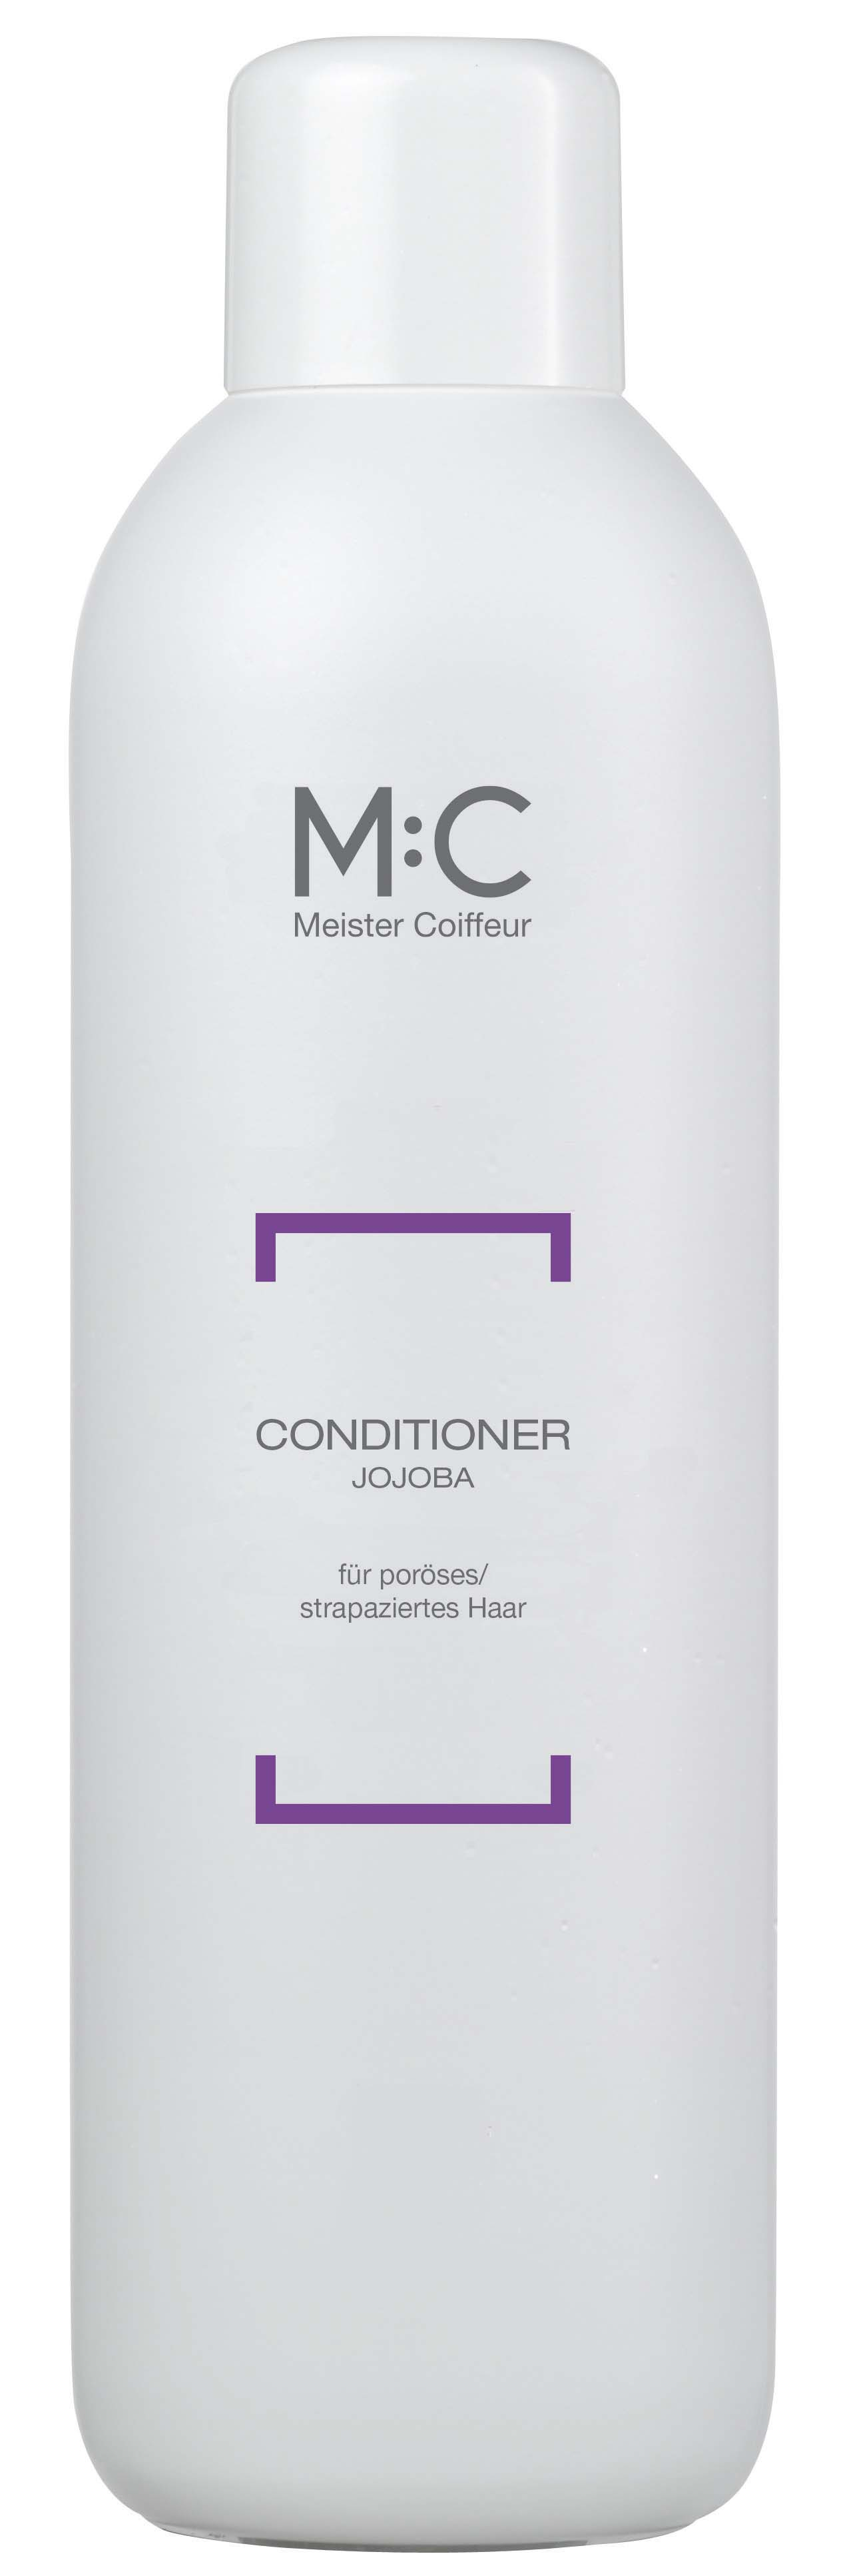 M:C Conditioner Jojoba P 1.000 ml